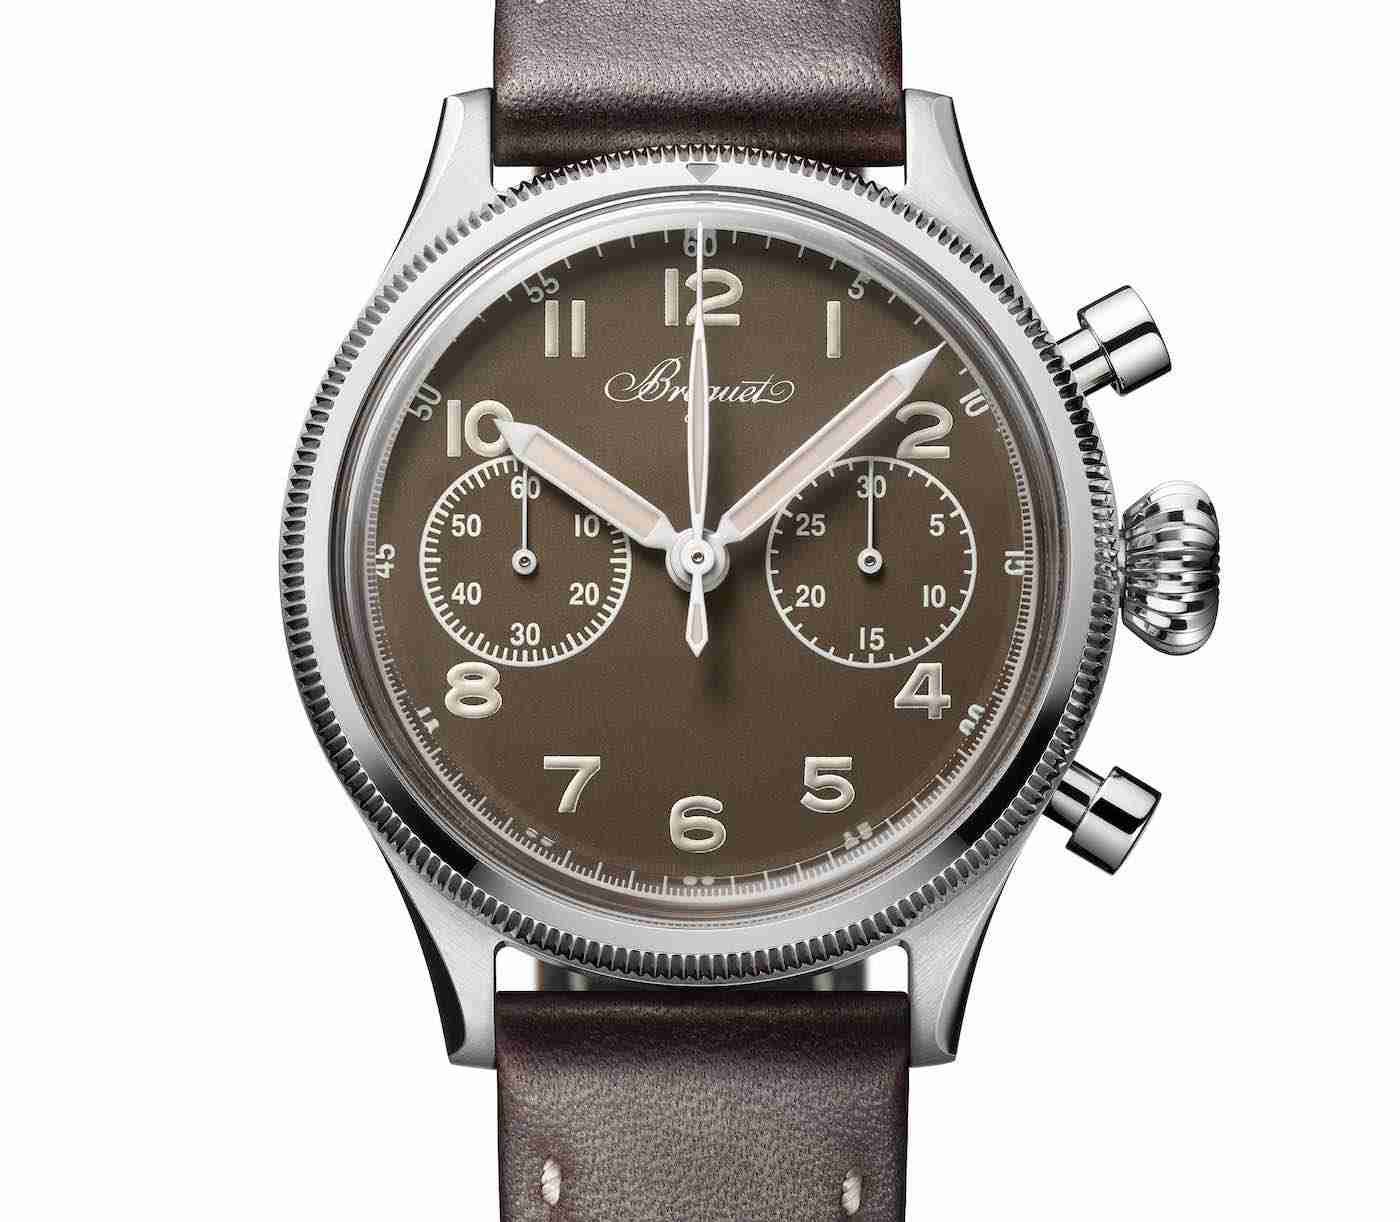 Only Watch Auction 2019 Breguet Type 20 Replica Watch Buying Guide 2.jpg